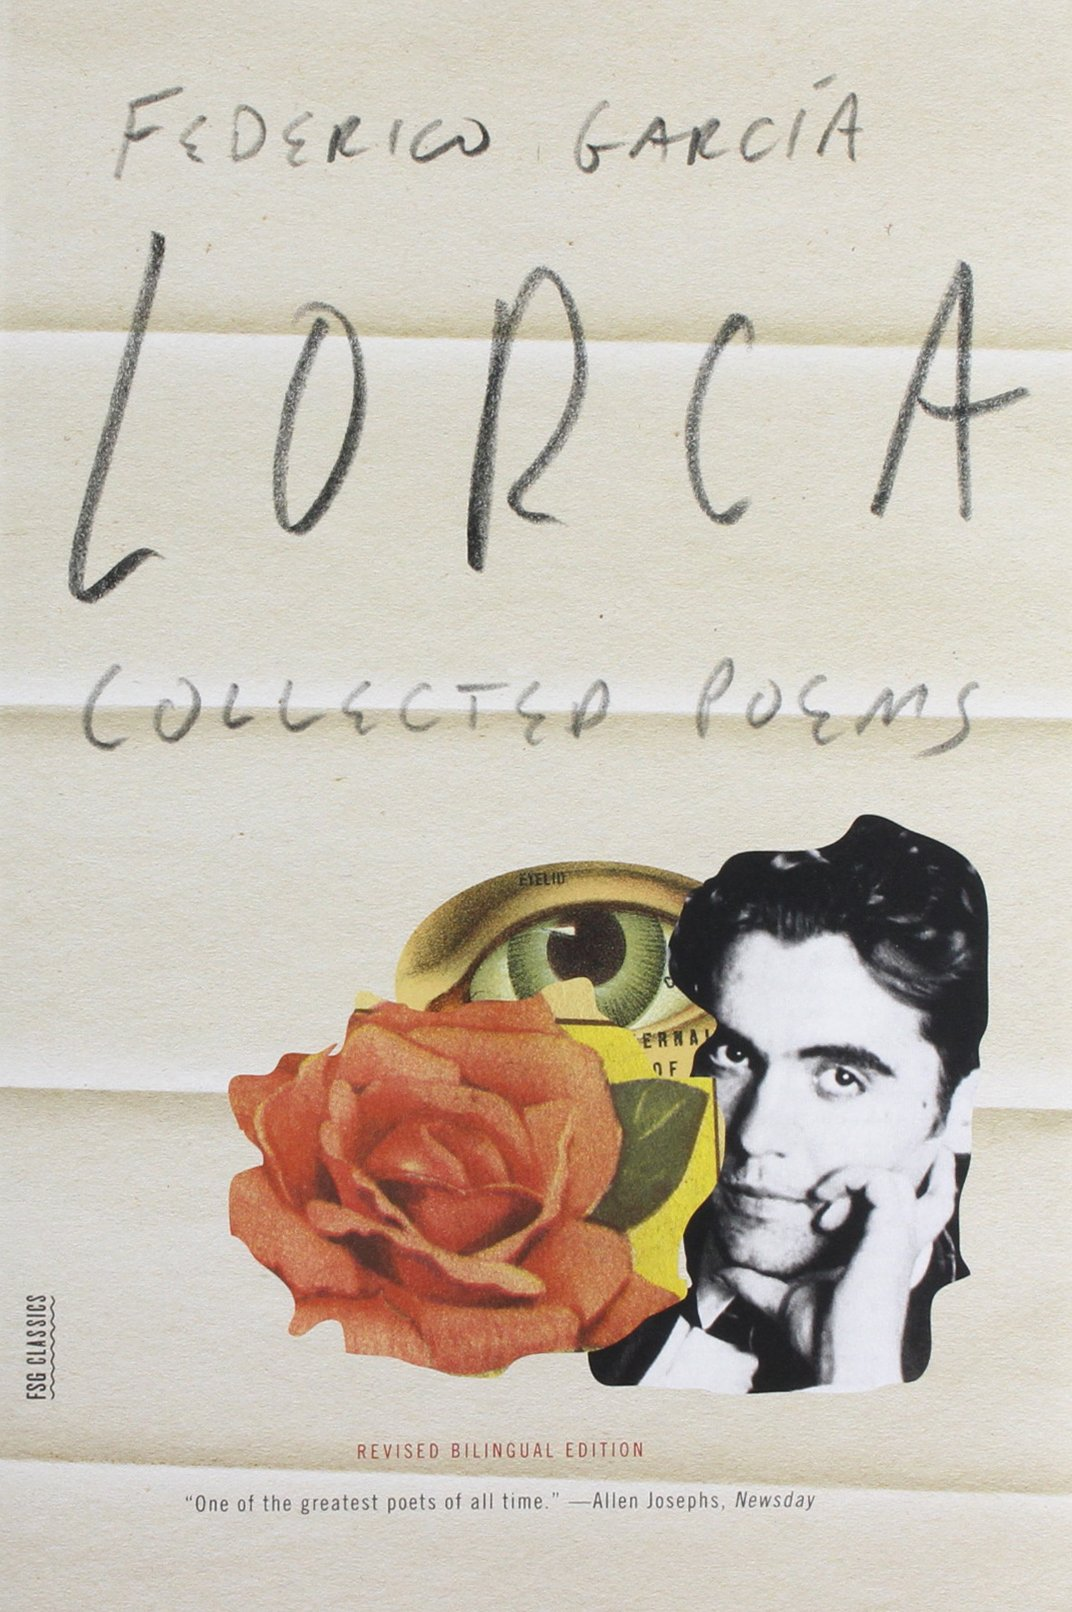 The Collected Poems: A Bilingual Edition (Revised) ebook